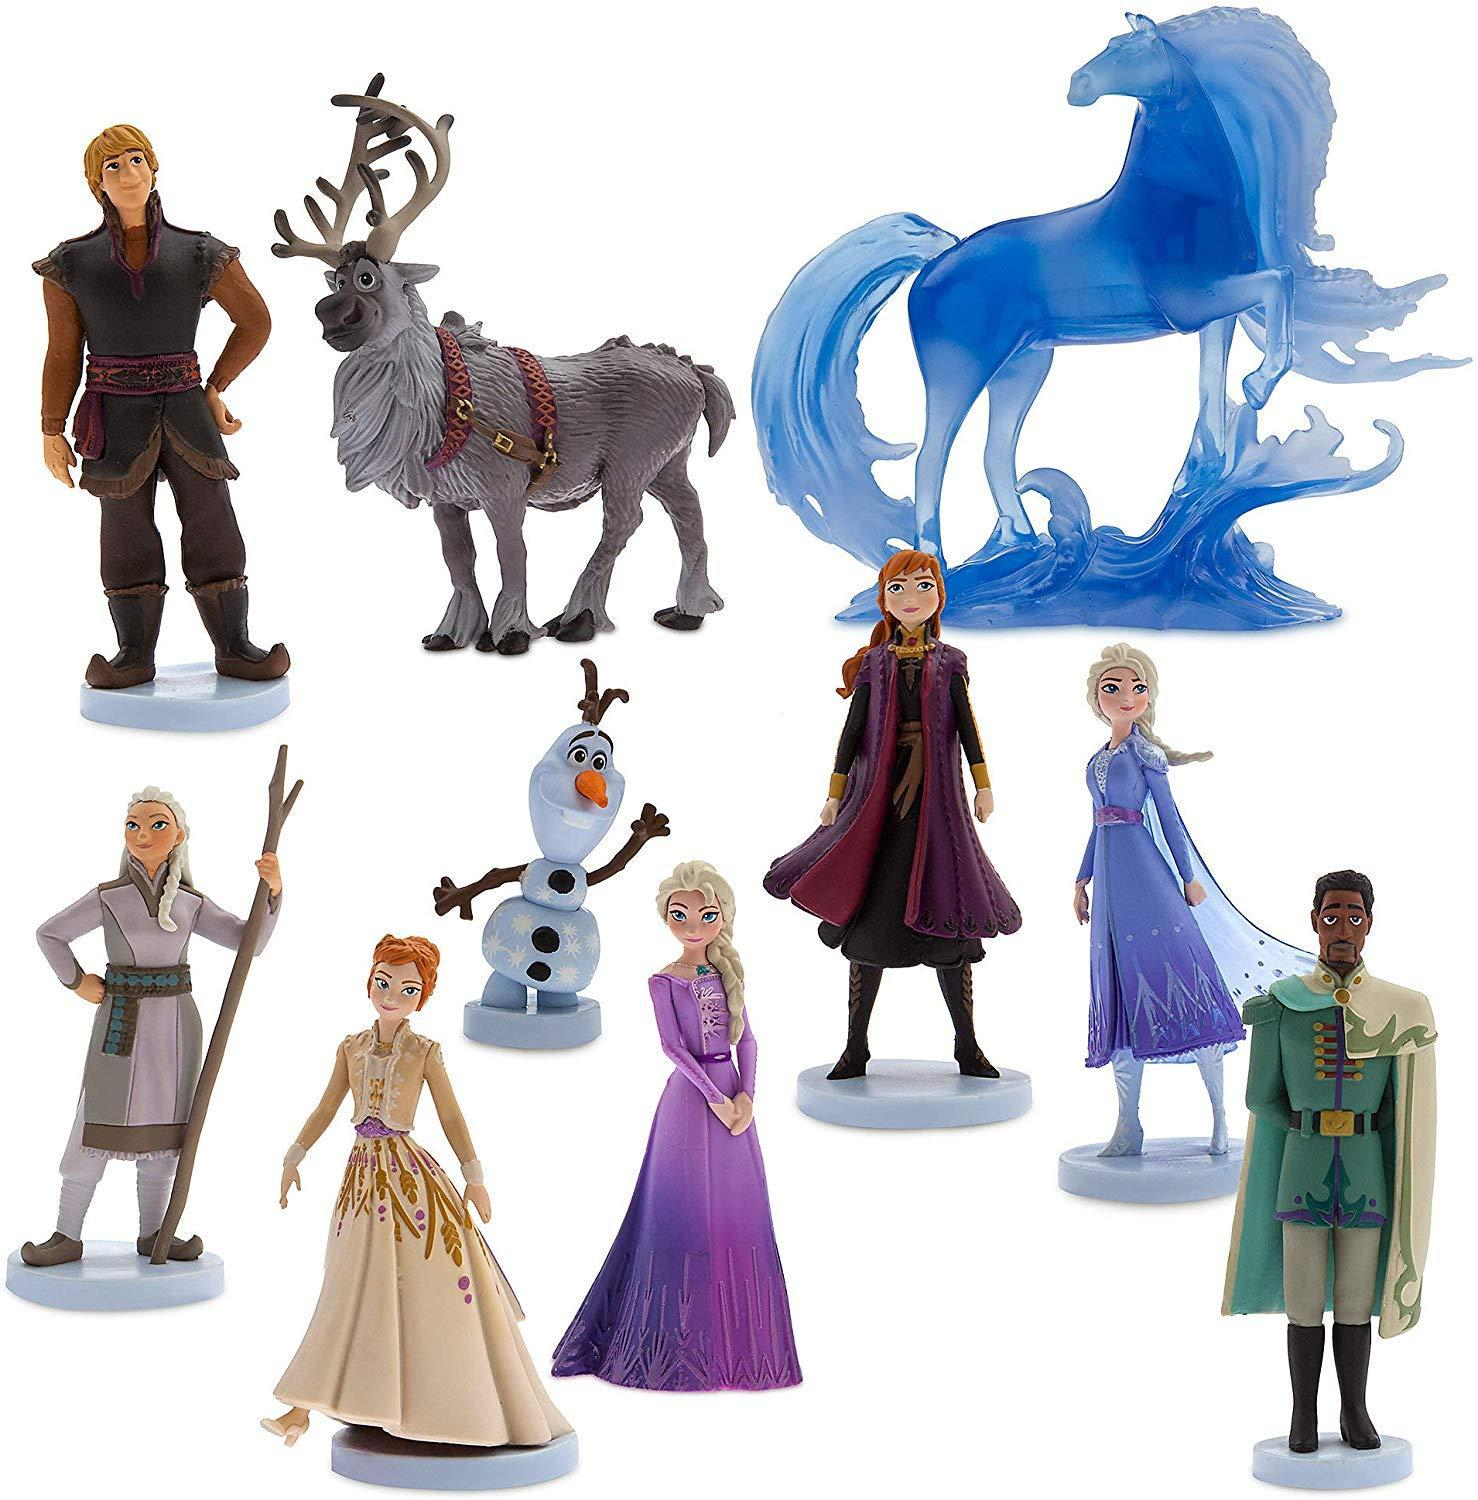 2020 HOT Disney Frozen 2 Elsa Anna Snow Queen PVC Action Figure Olaf Kristoff Sven Anime Dolls Figurines Kids Toy Children Gift